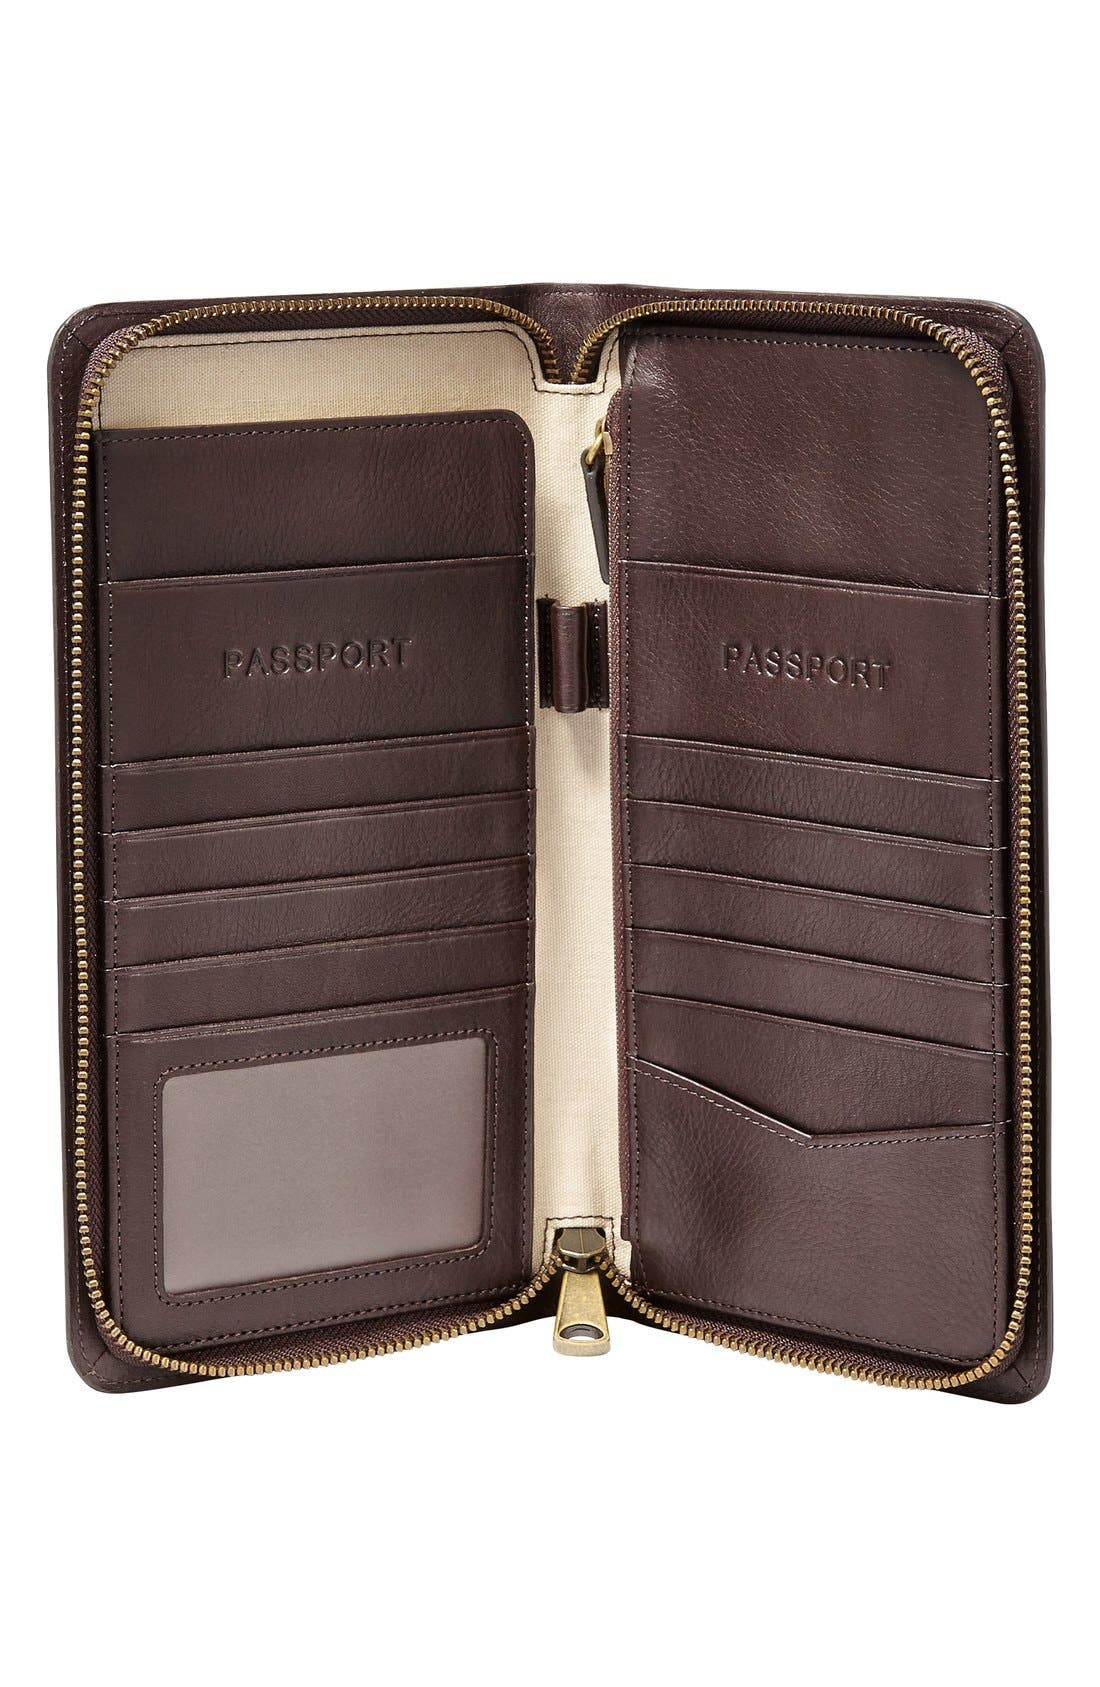 Leather Zip Passport Case,                             Alternate thumbnail 3, color,